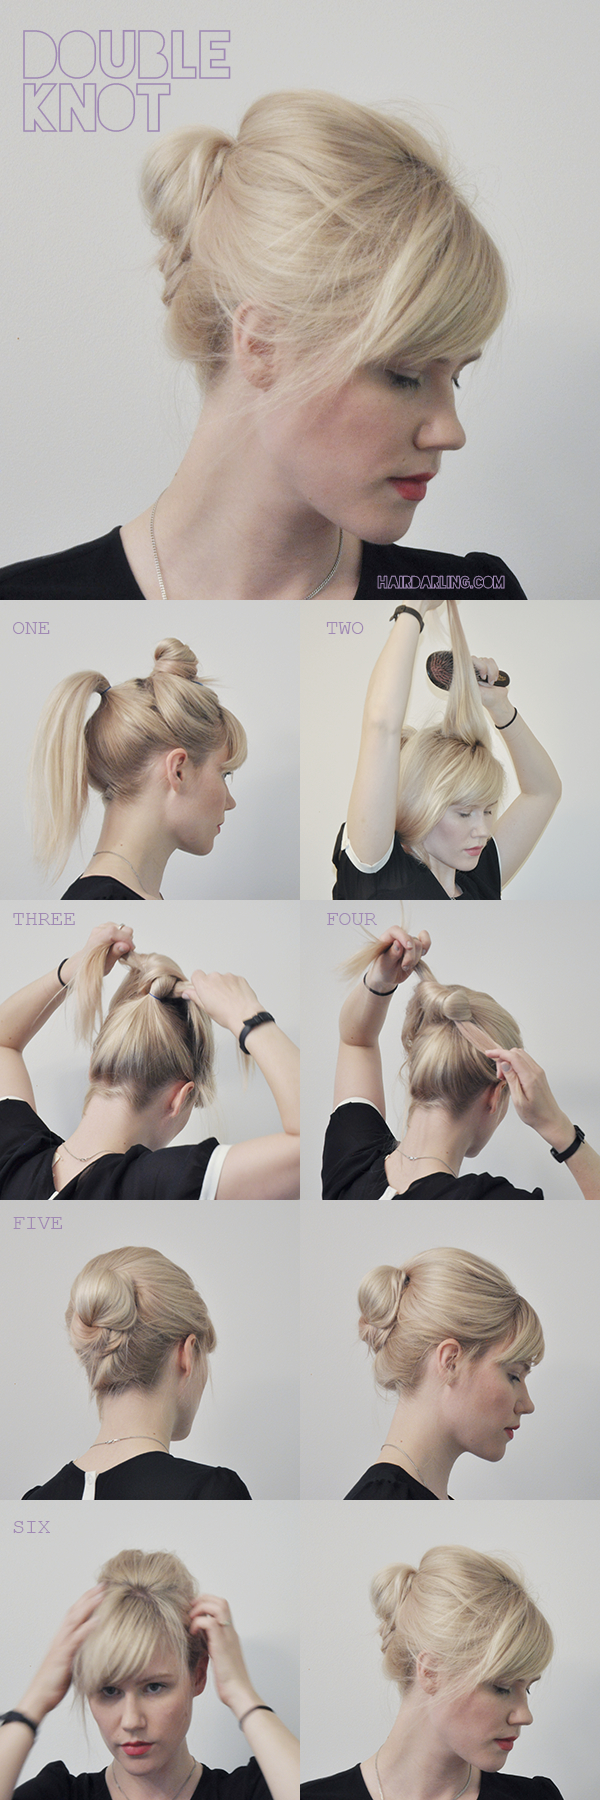 Hair Tutorial Double Knot For You Addy Hair Tutorial Hair Styles Hairstyles Haircuts